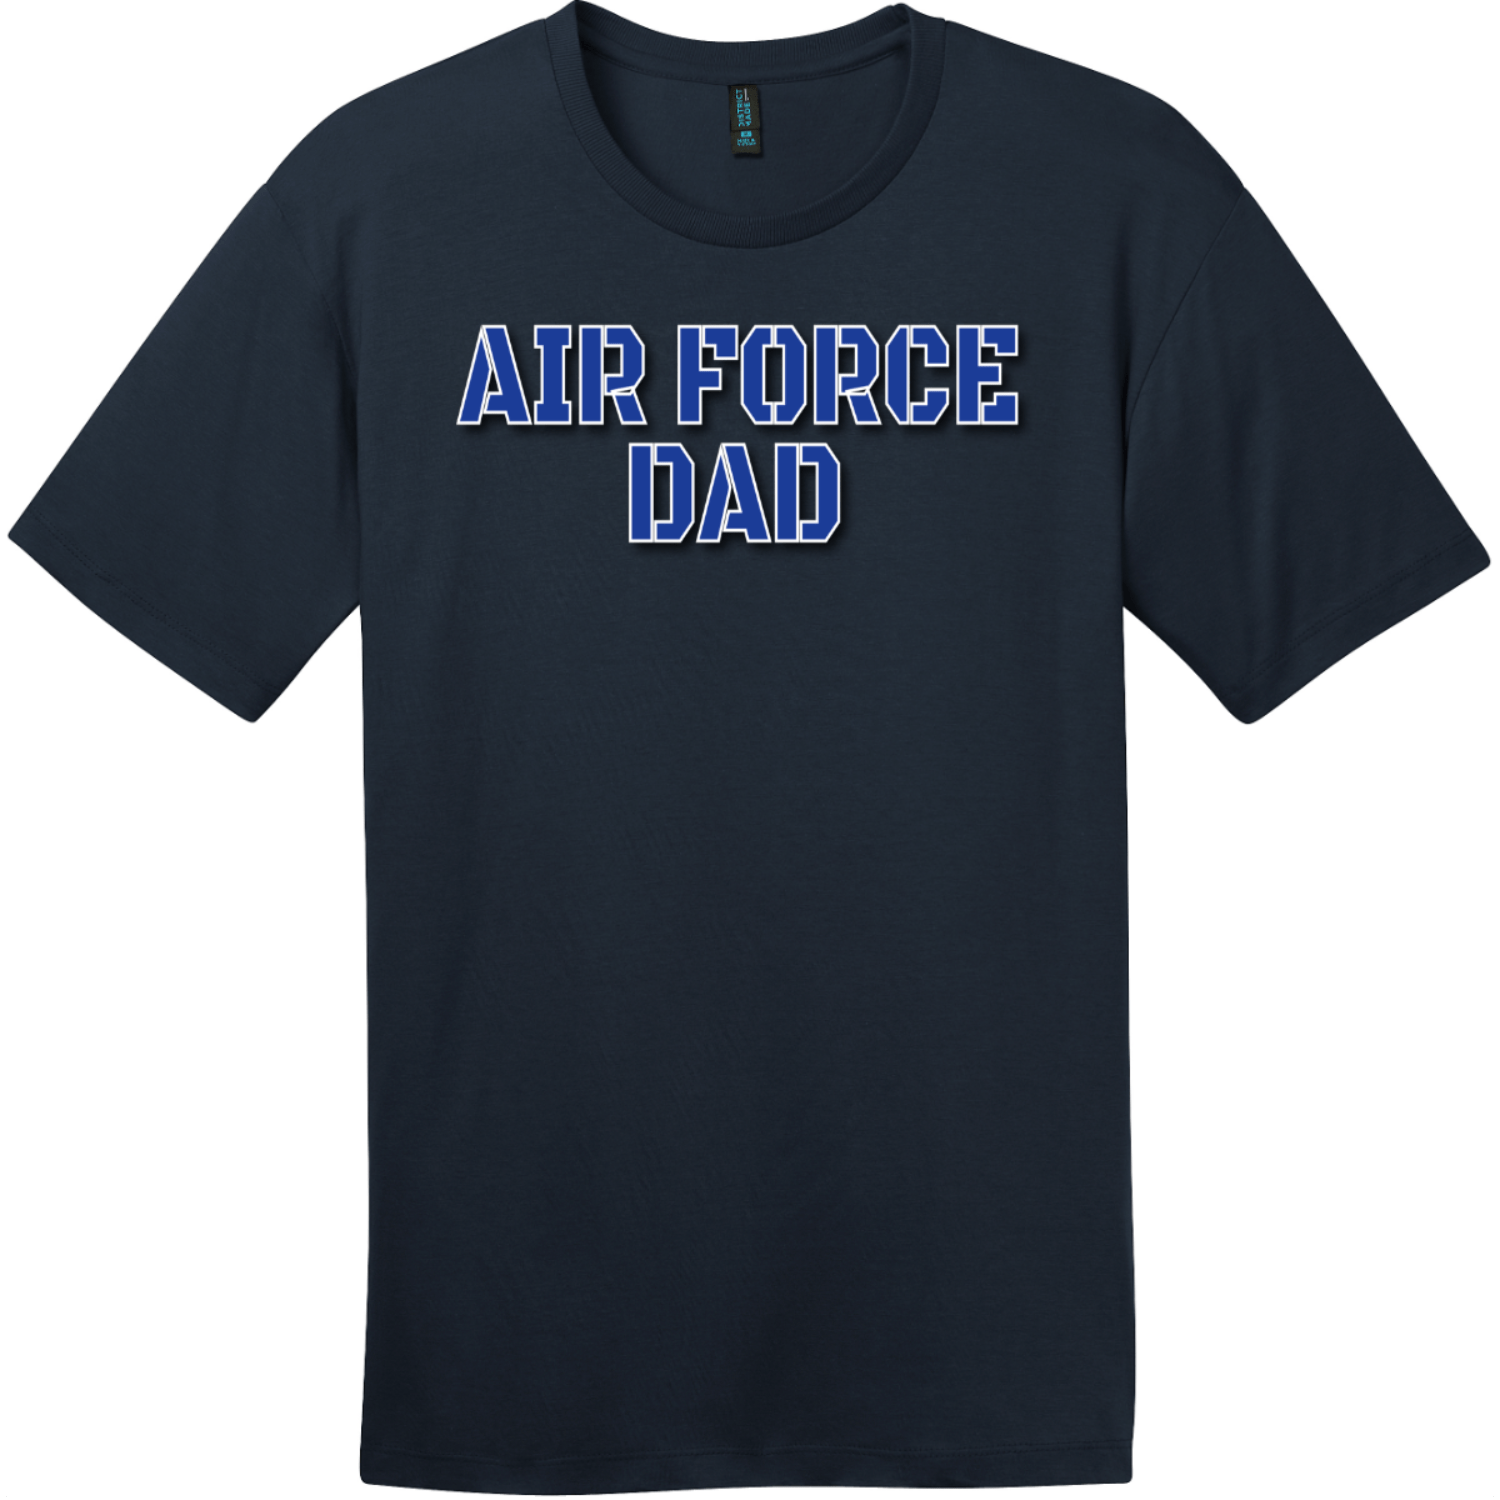 Air Force Dad T Shirt New Navy District Perfect Weight Tee DT104